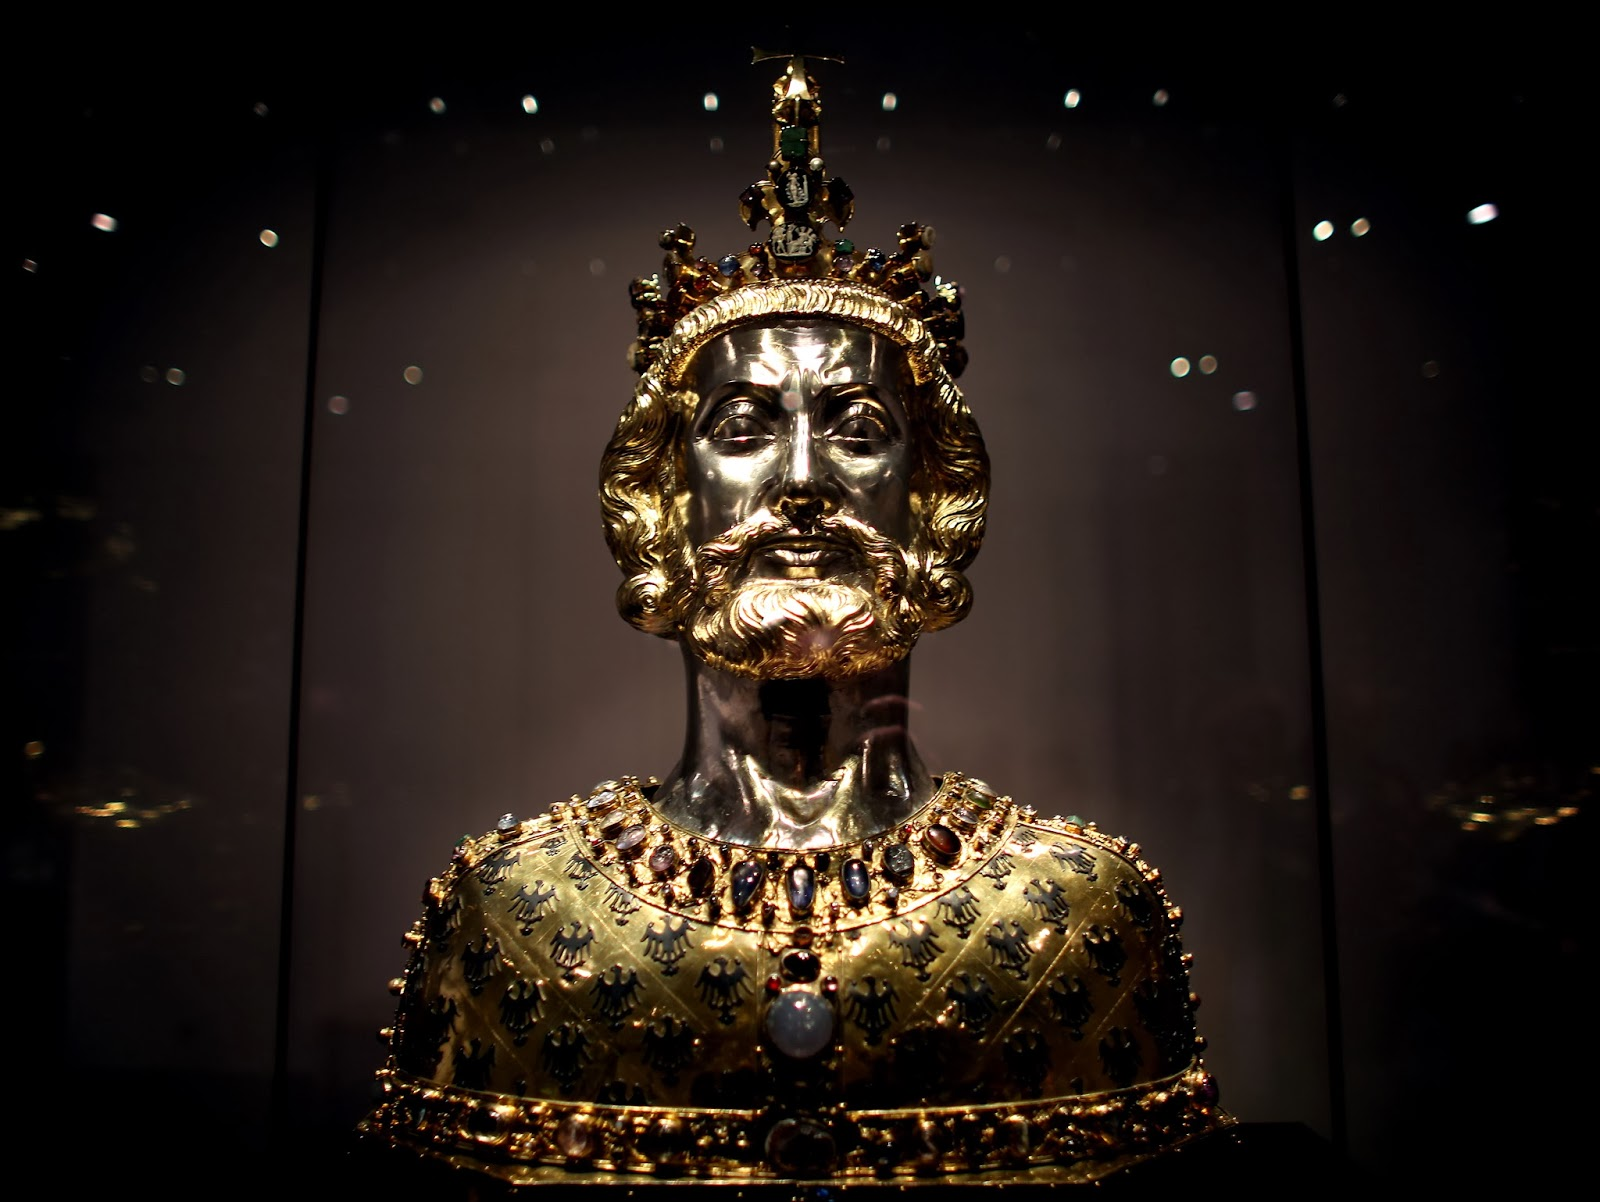 Charlemagne's bones are (probably) real